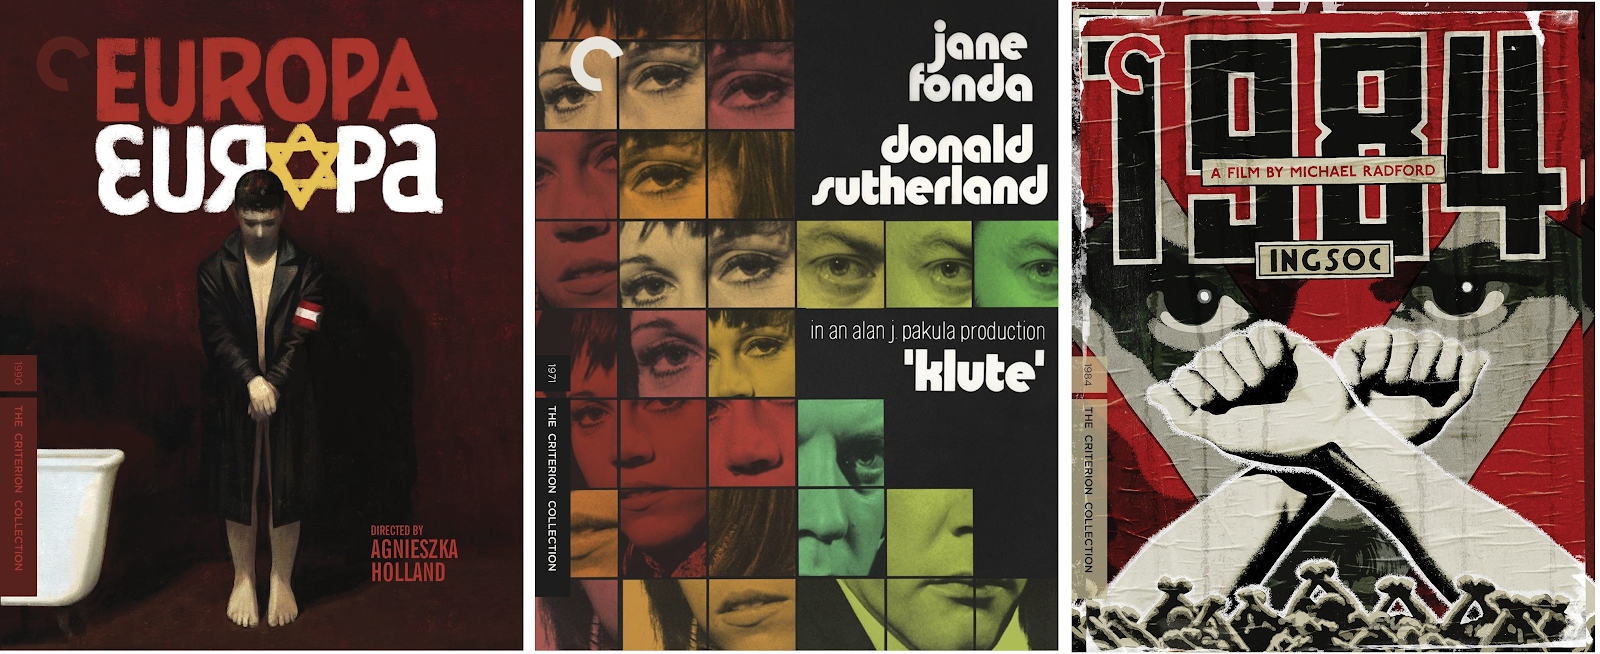 Criterion Collection on DVD Netflix in July 2019